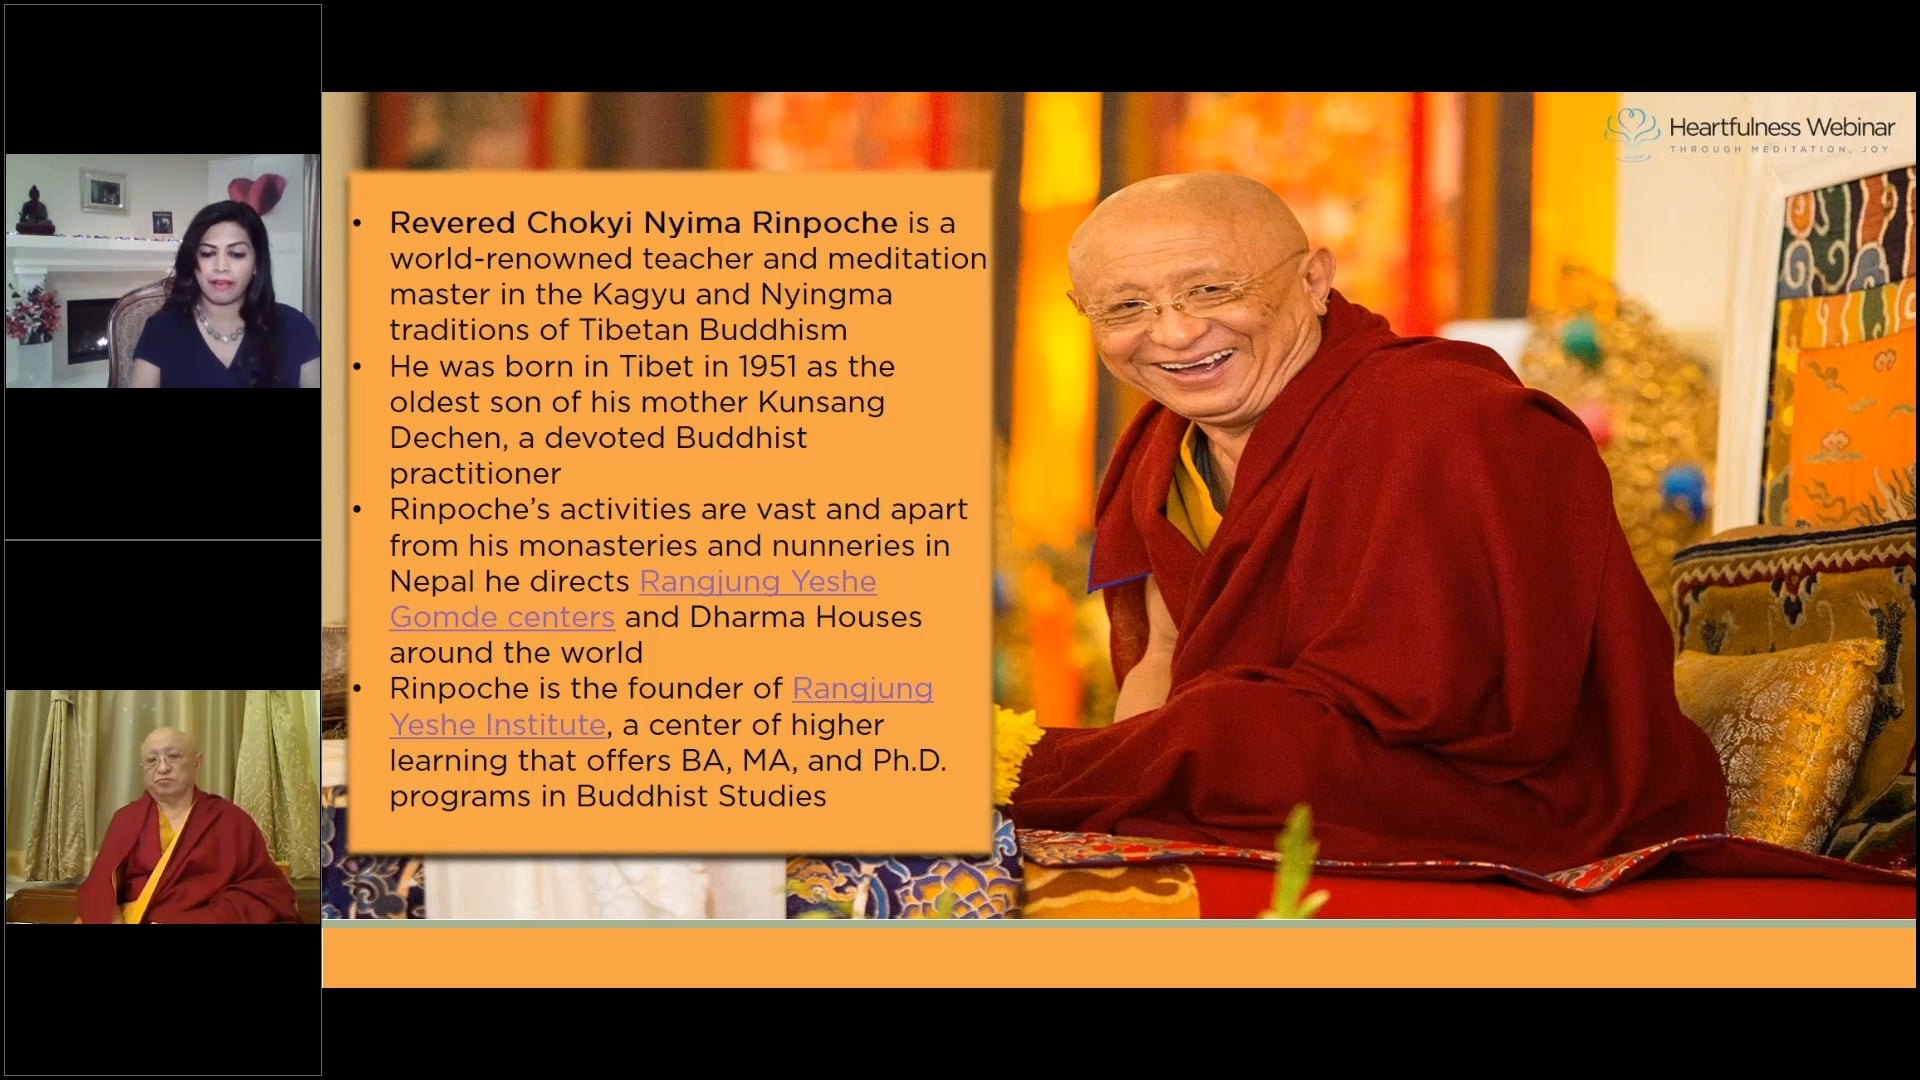 Kindfulness is Life by Revered Chokyi Nyima Rinpoche, world-renowned teacher and meditation master in the Kagyu and Nyingma traditions of Tibetan Buddhism